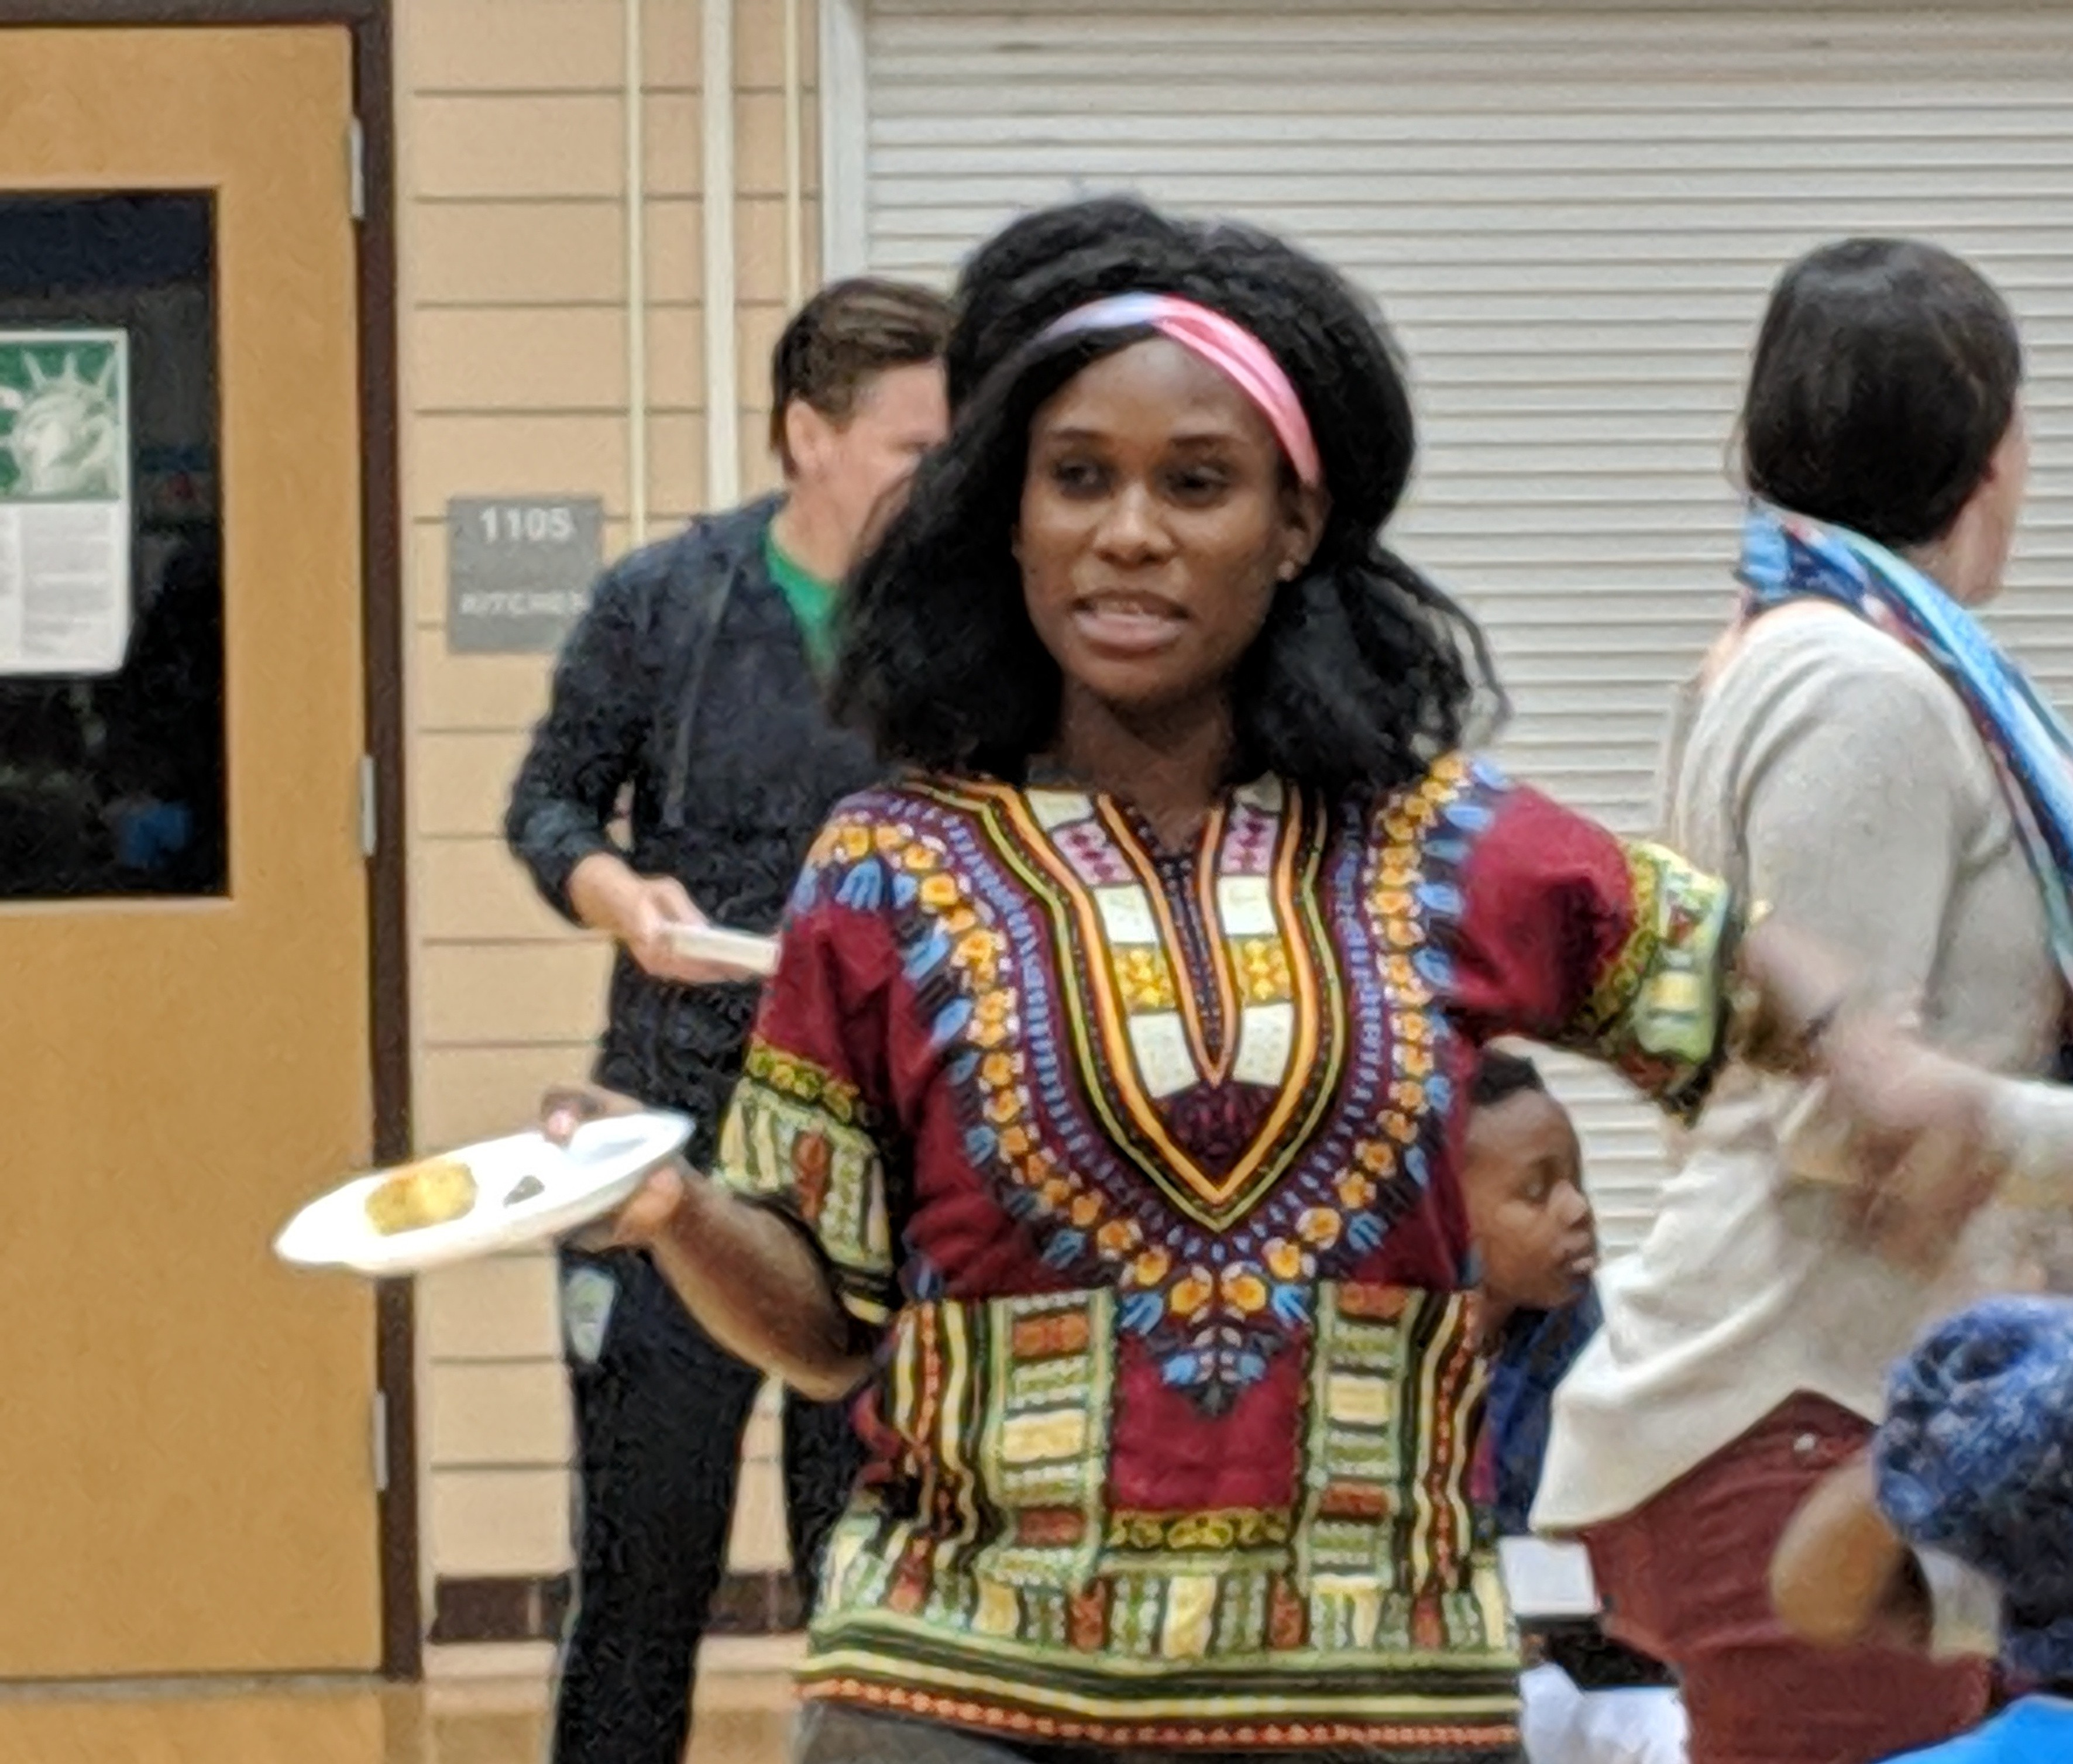 Tricia Gabriel, co-founder of Genesis Youth Foundation, hands out snacks to children in the program, in Des Moines, Iowa, Jan. 28, 2019.